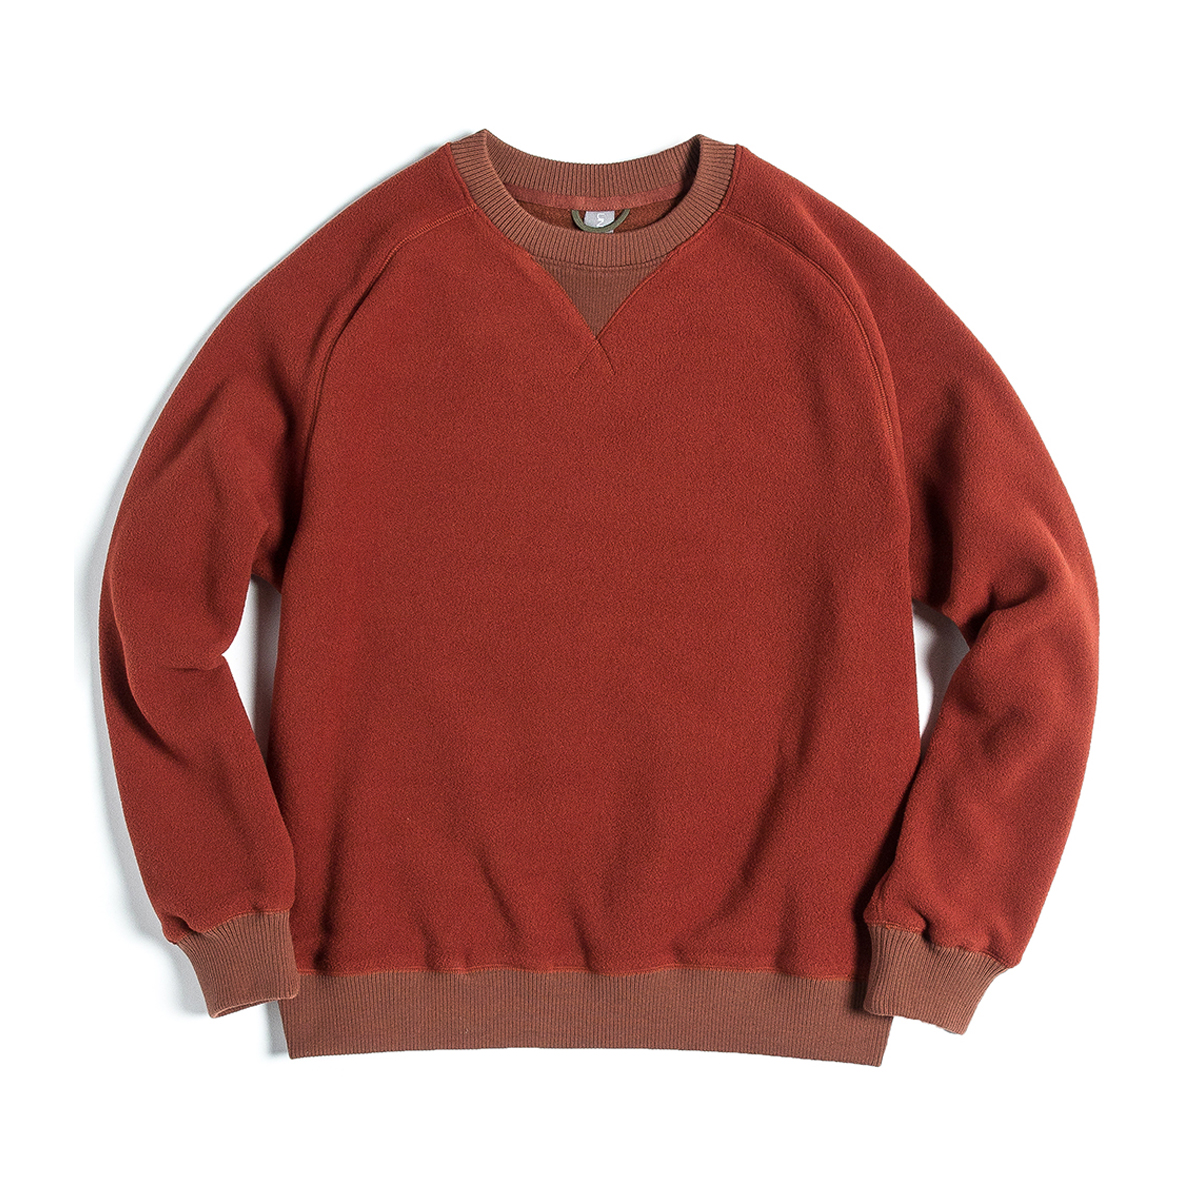 [UNAFFECTED] SWEAT SHIRT 'AMBER ORANGE FLEECE'